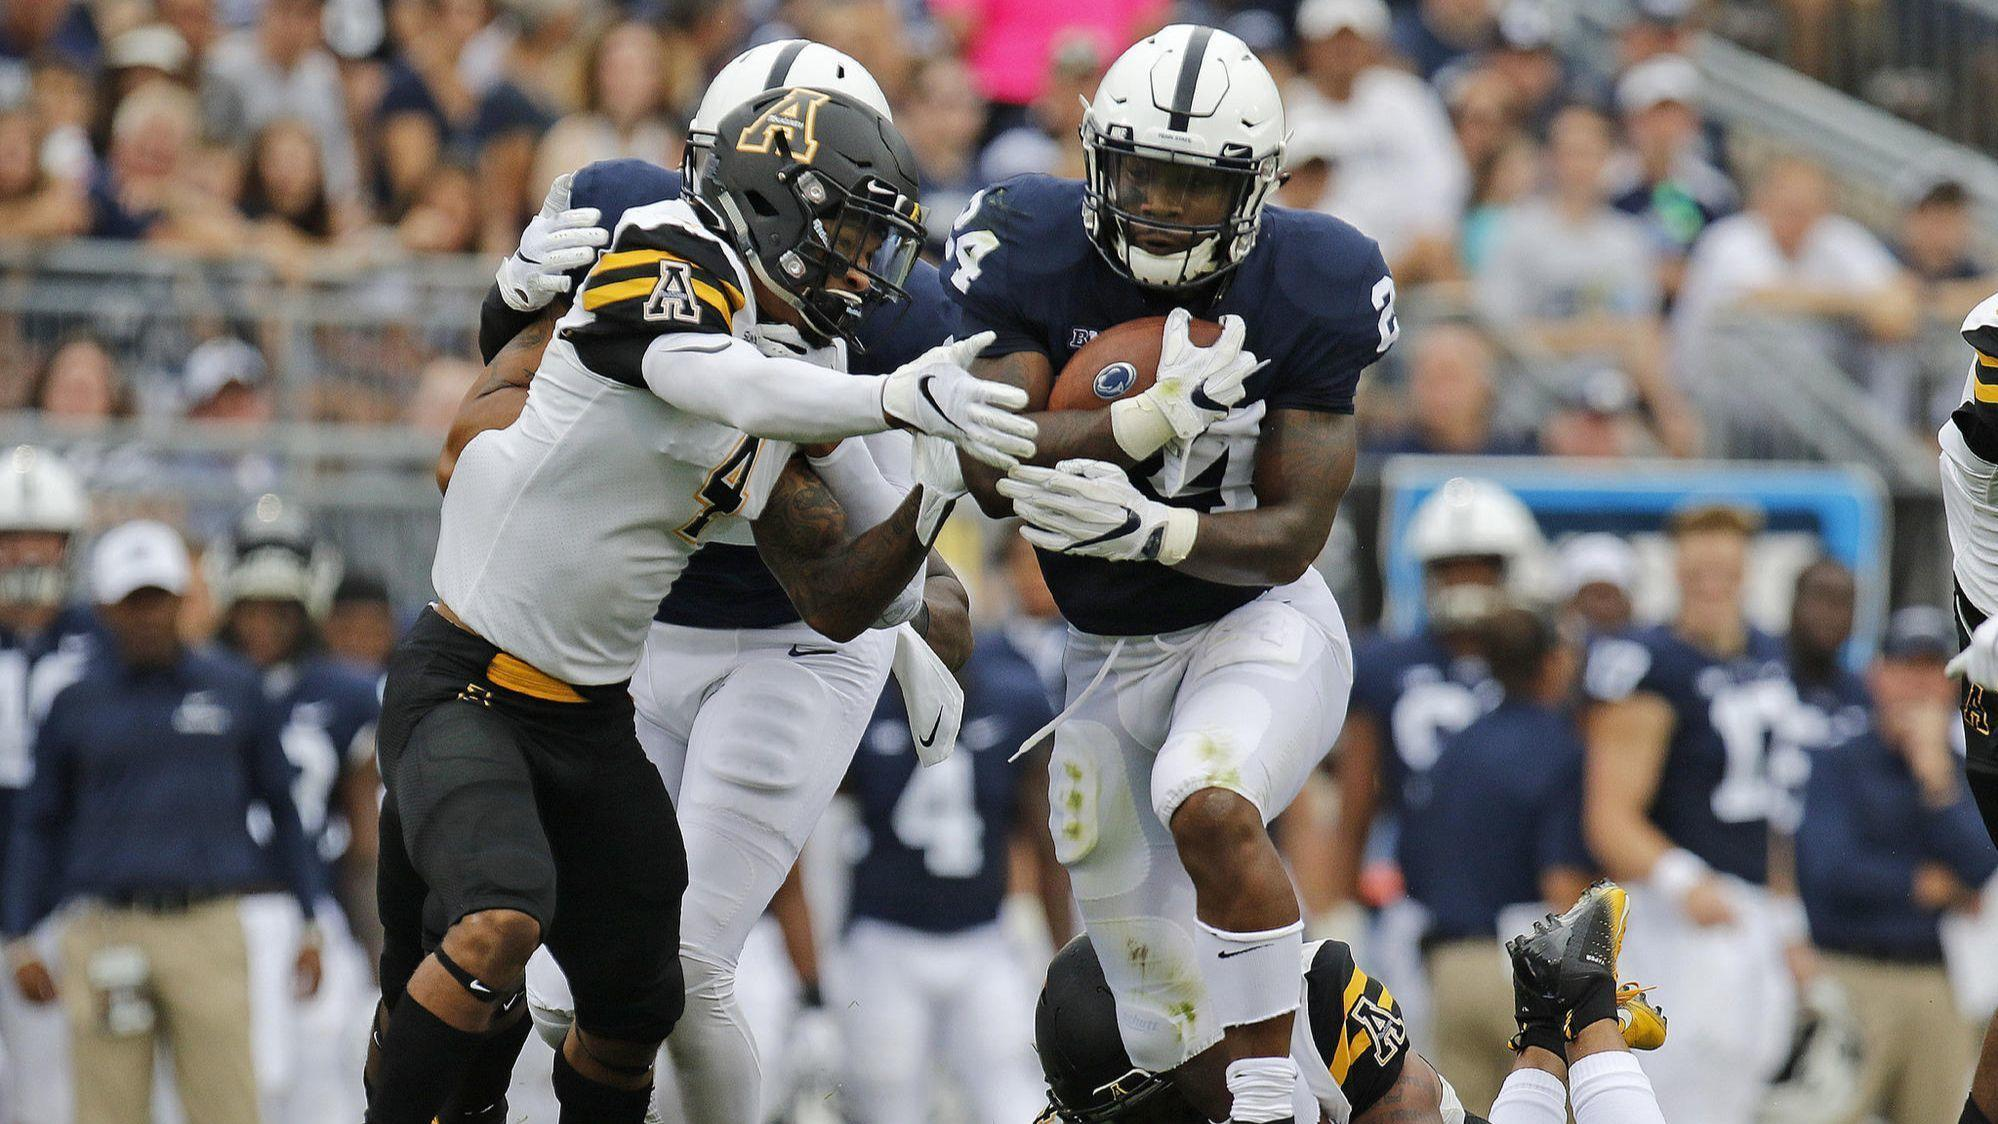 No. 10 Penn State survives 45-38 in OT vs Appalachian State